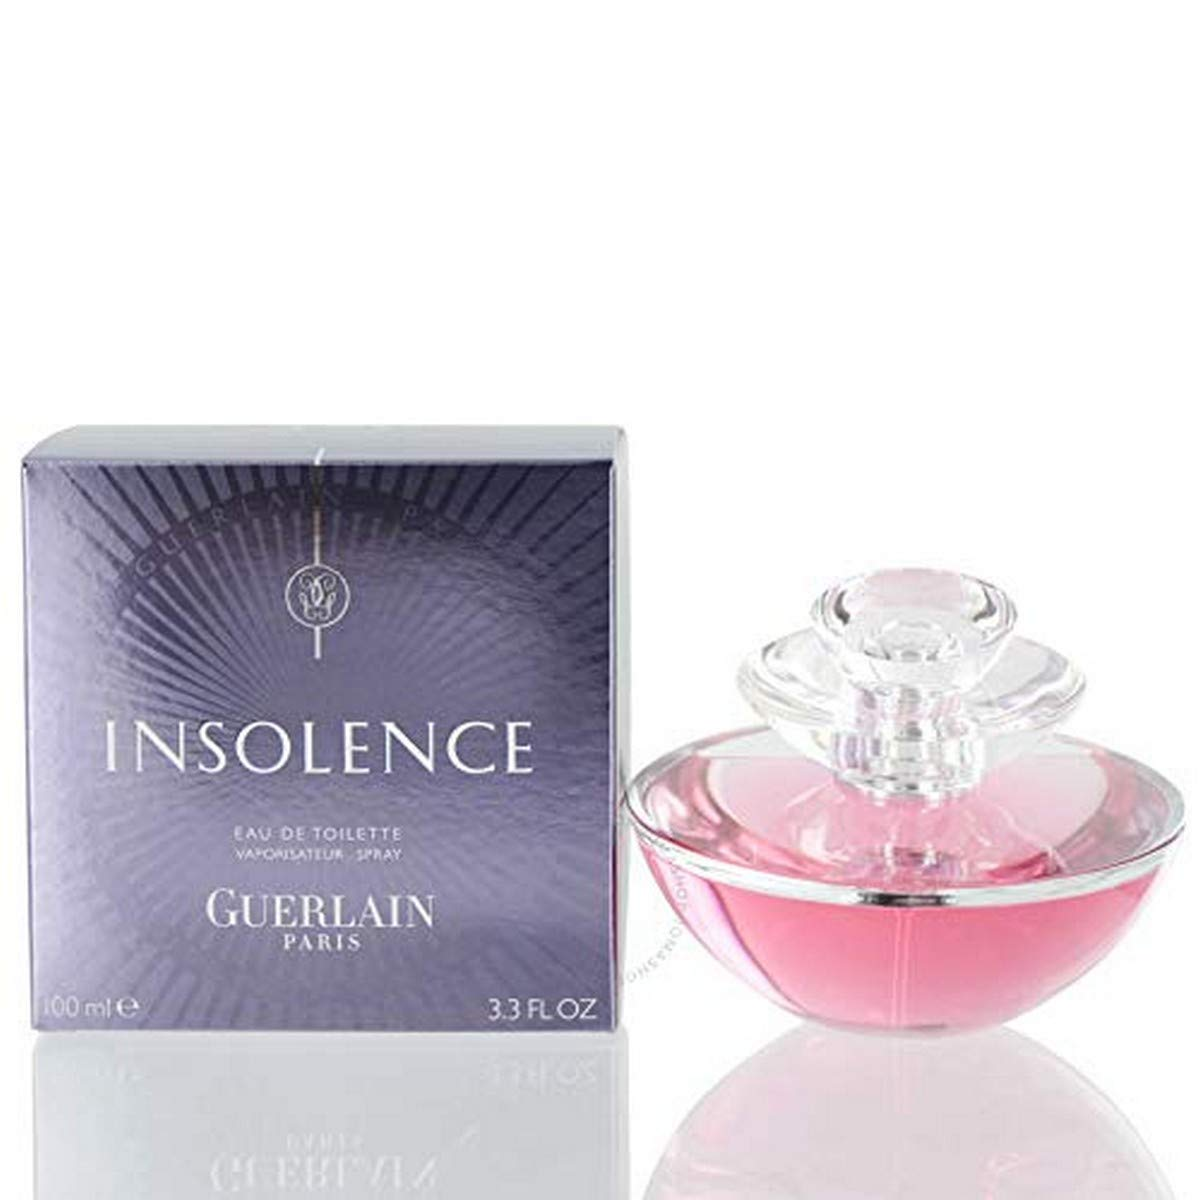 Insolence By Guerlain For Women. Eau De Toilette Spray 3.4 Oz. (Packaging and Bottle May Vary)